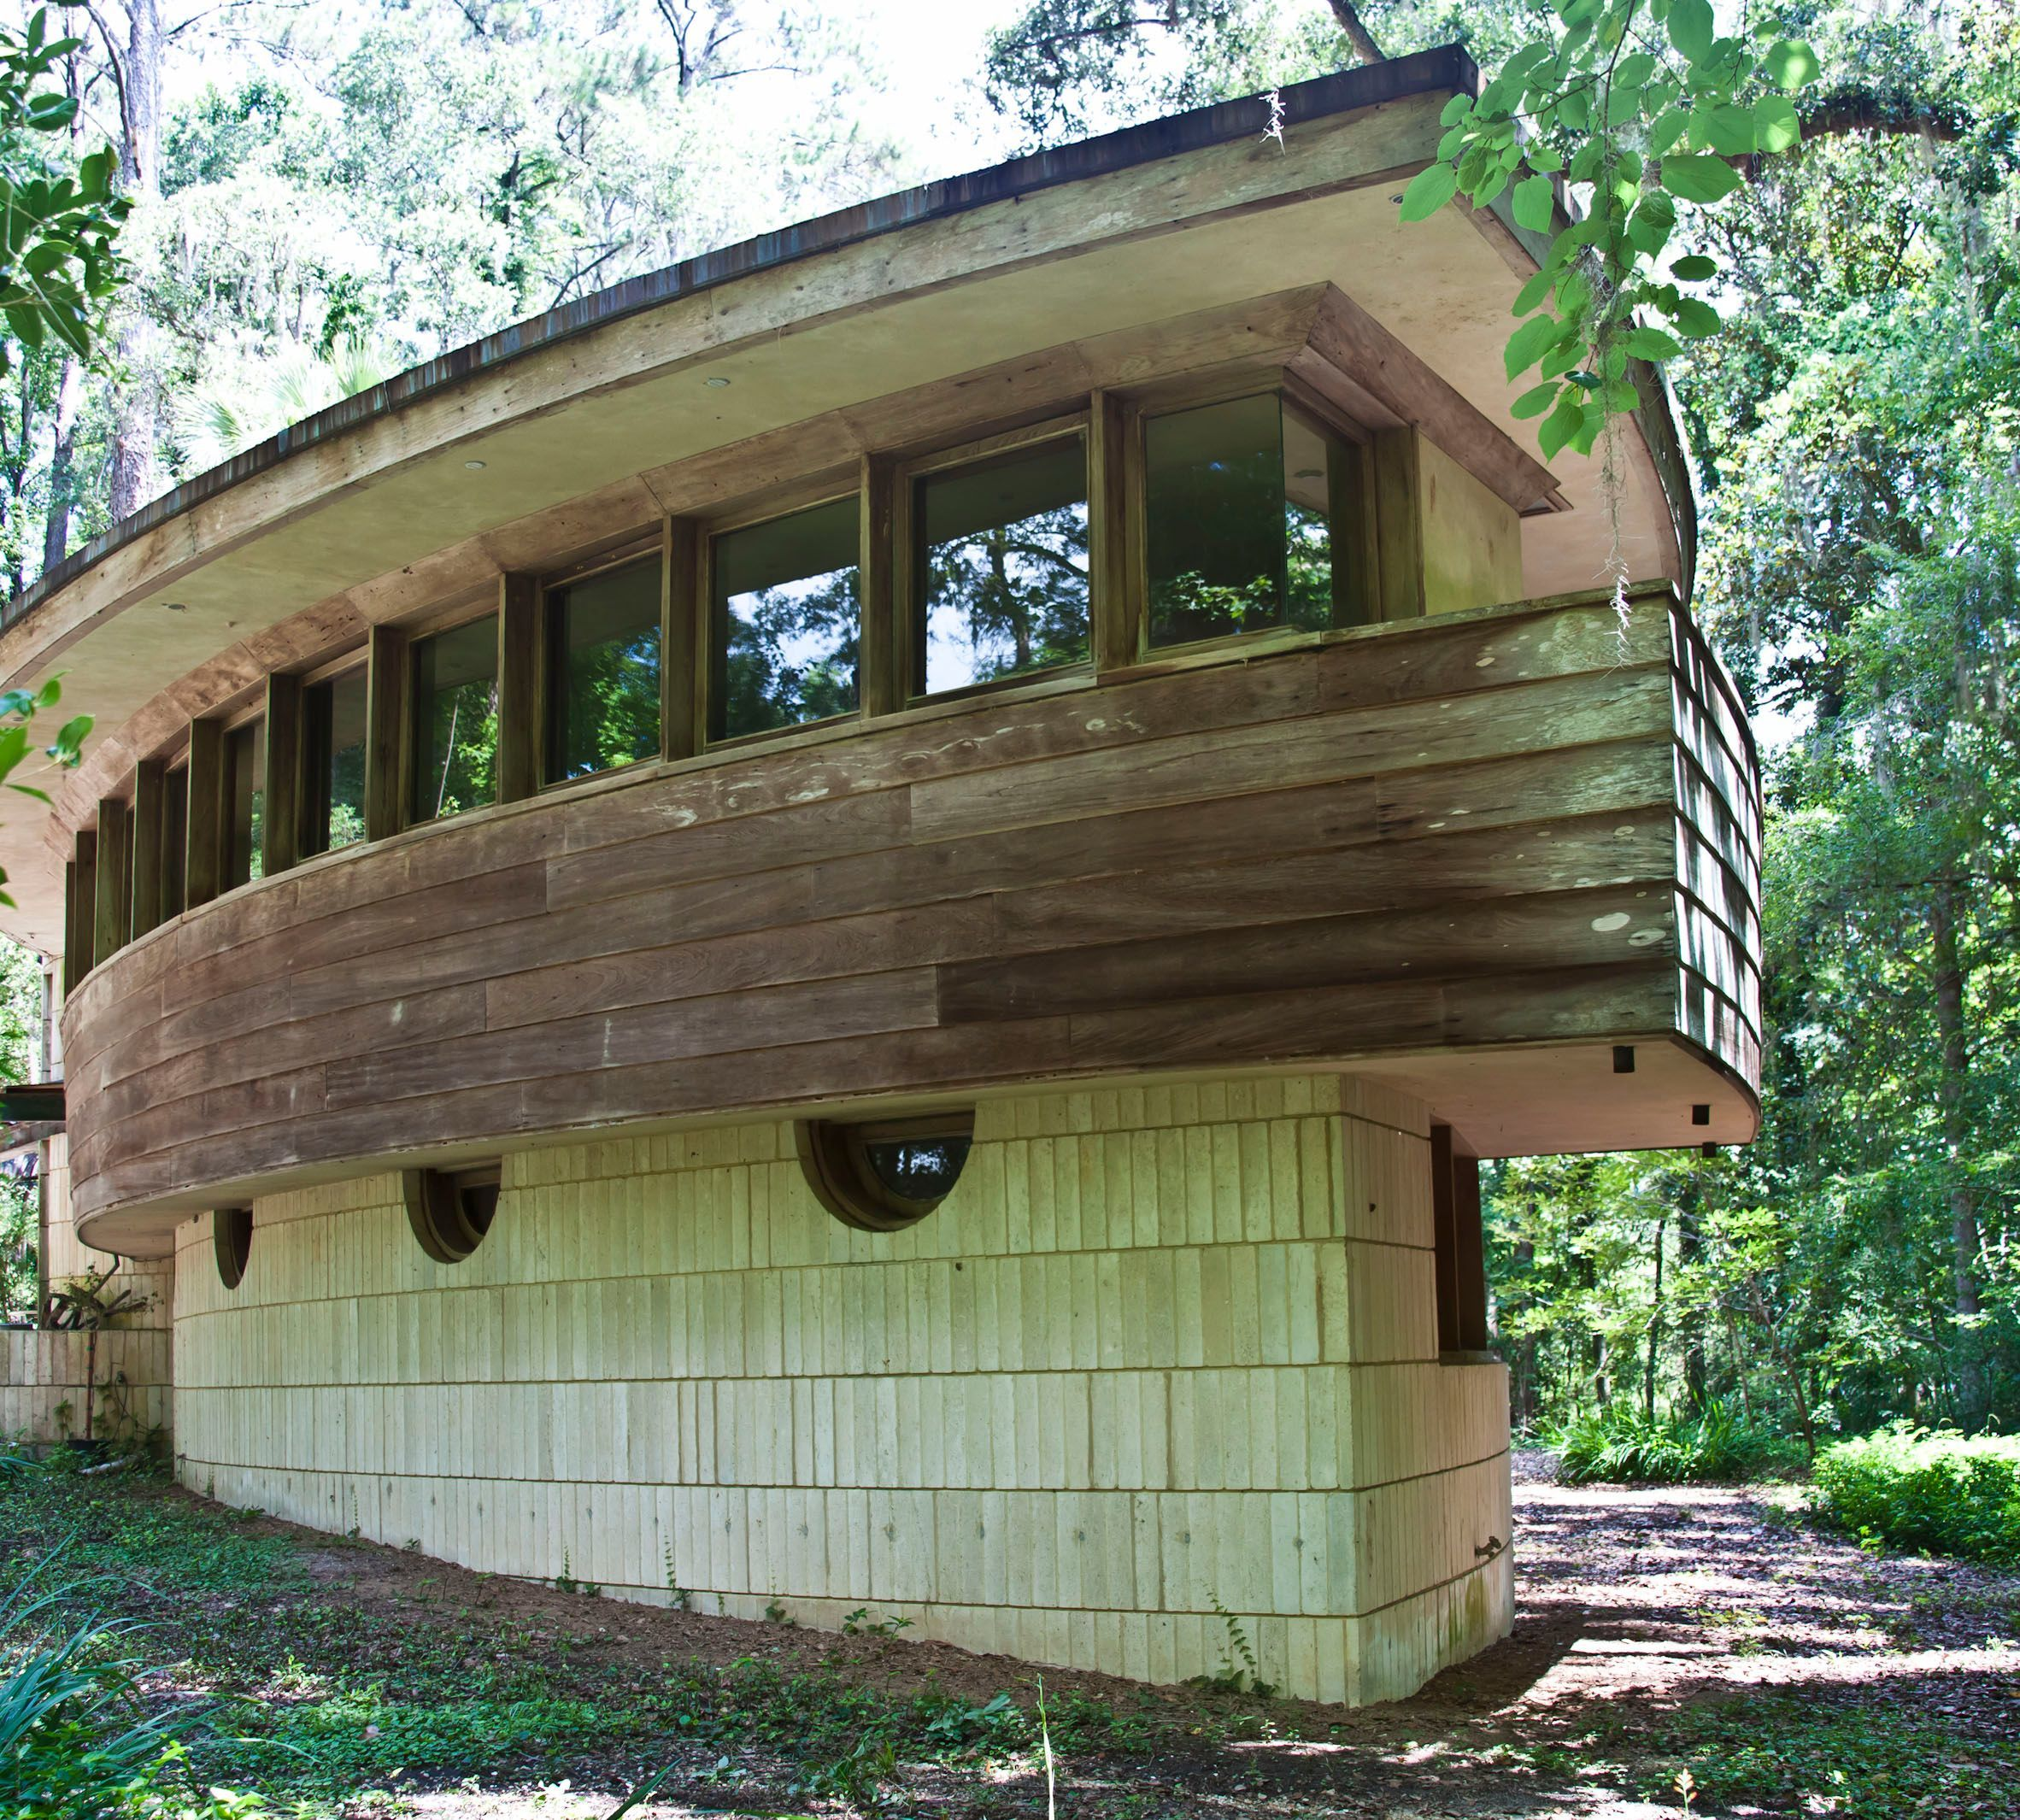 Meet architect Frank Lloyd Wright on Sunday at Spring House.